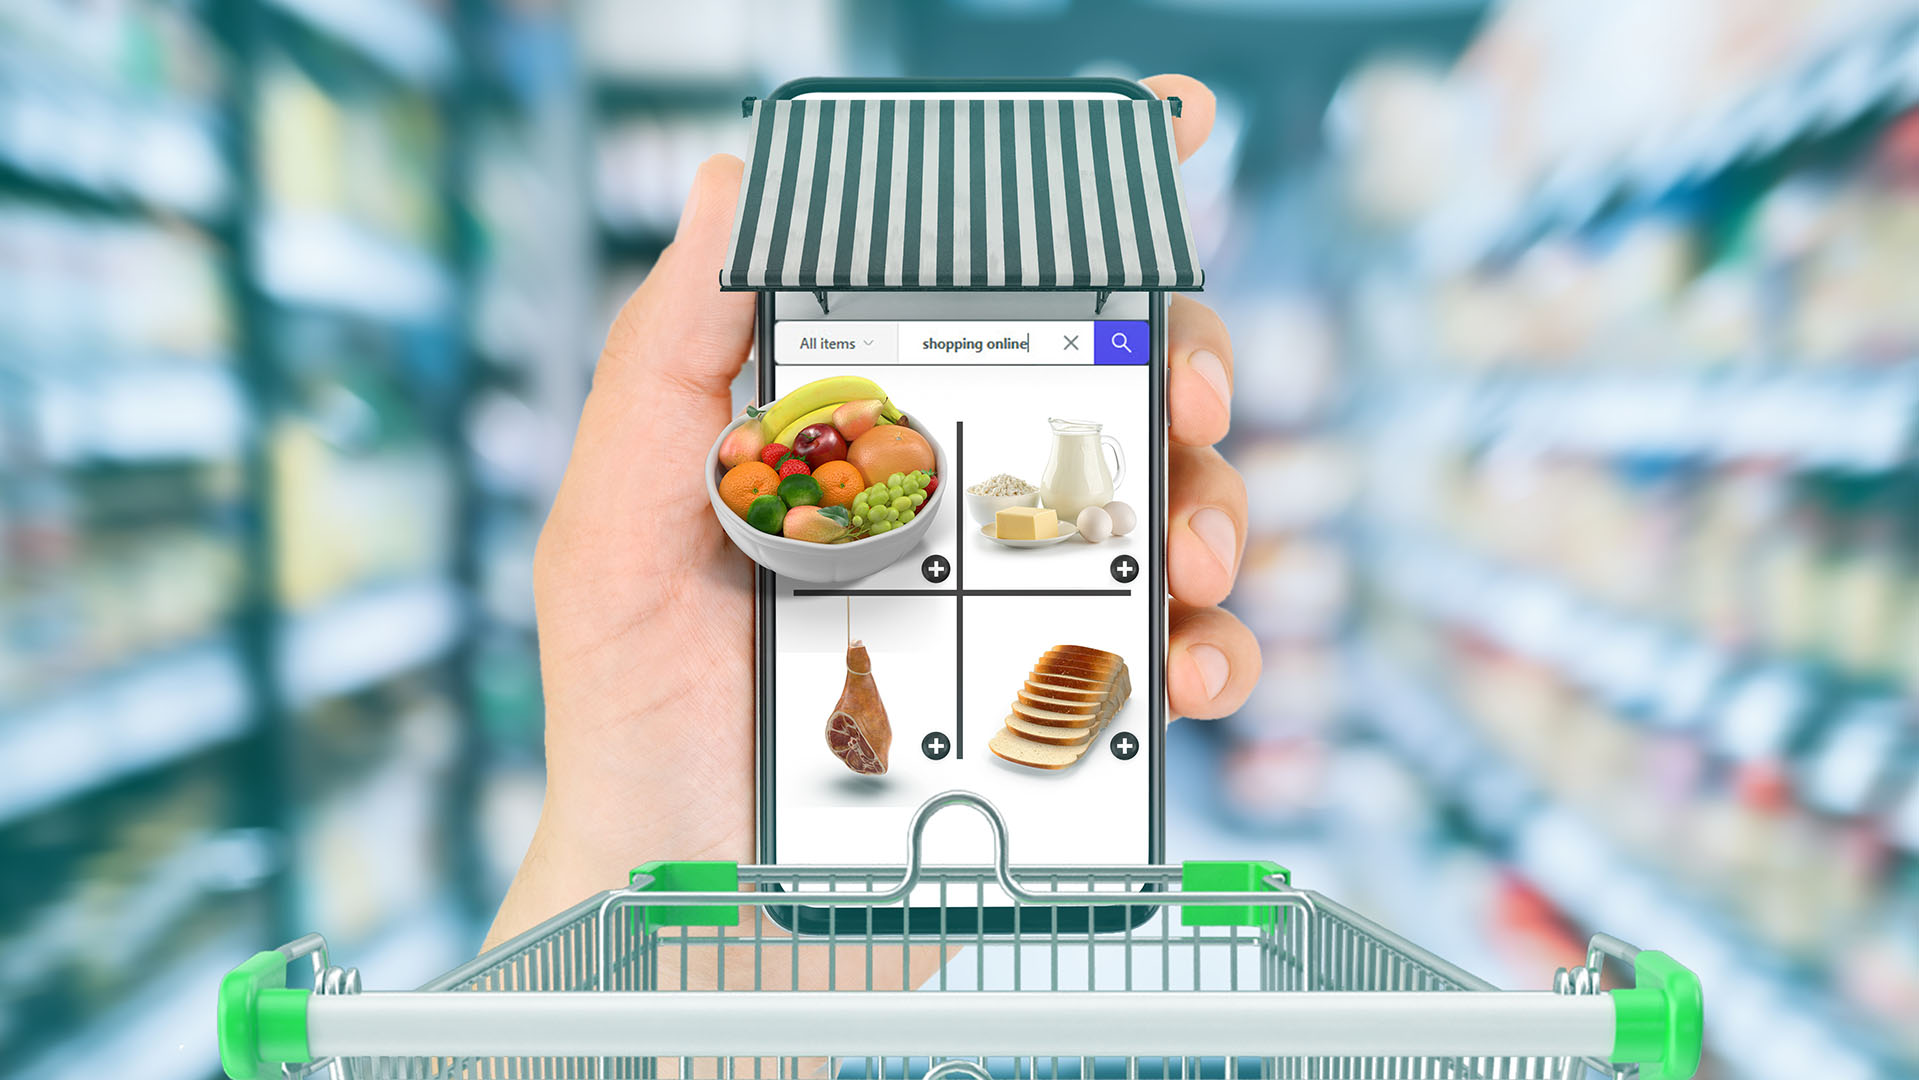 new normal Futuristic Technology in smart retail industrial concept using artificial intelligence, machine learning, digital twin, 5g, augmented mixed virtual rality, robot in corona virus spread